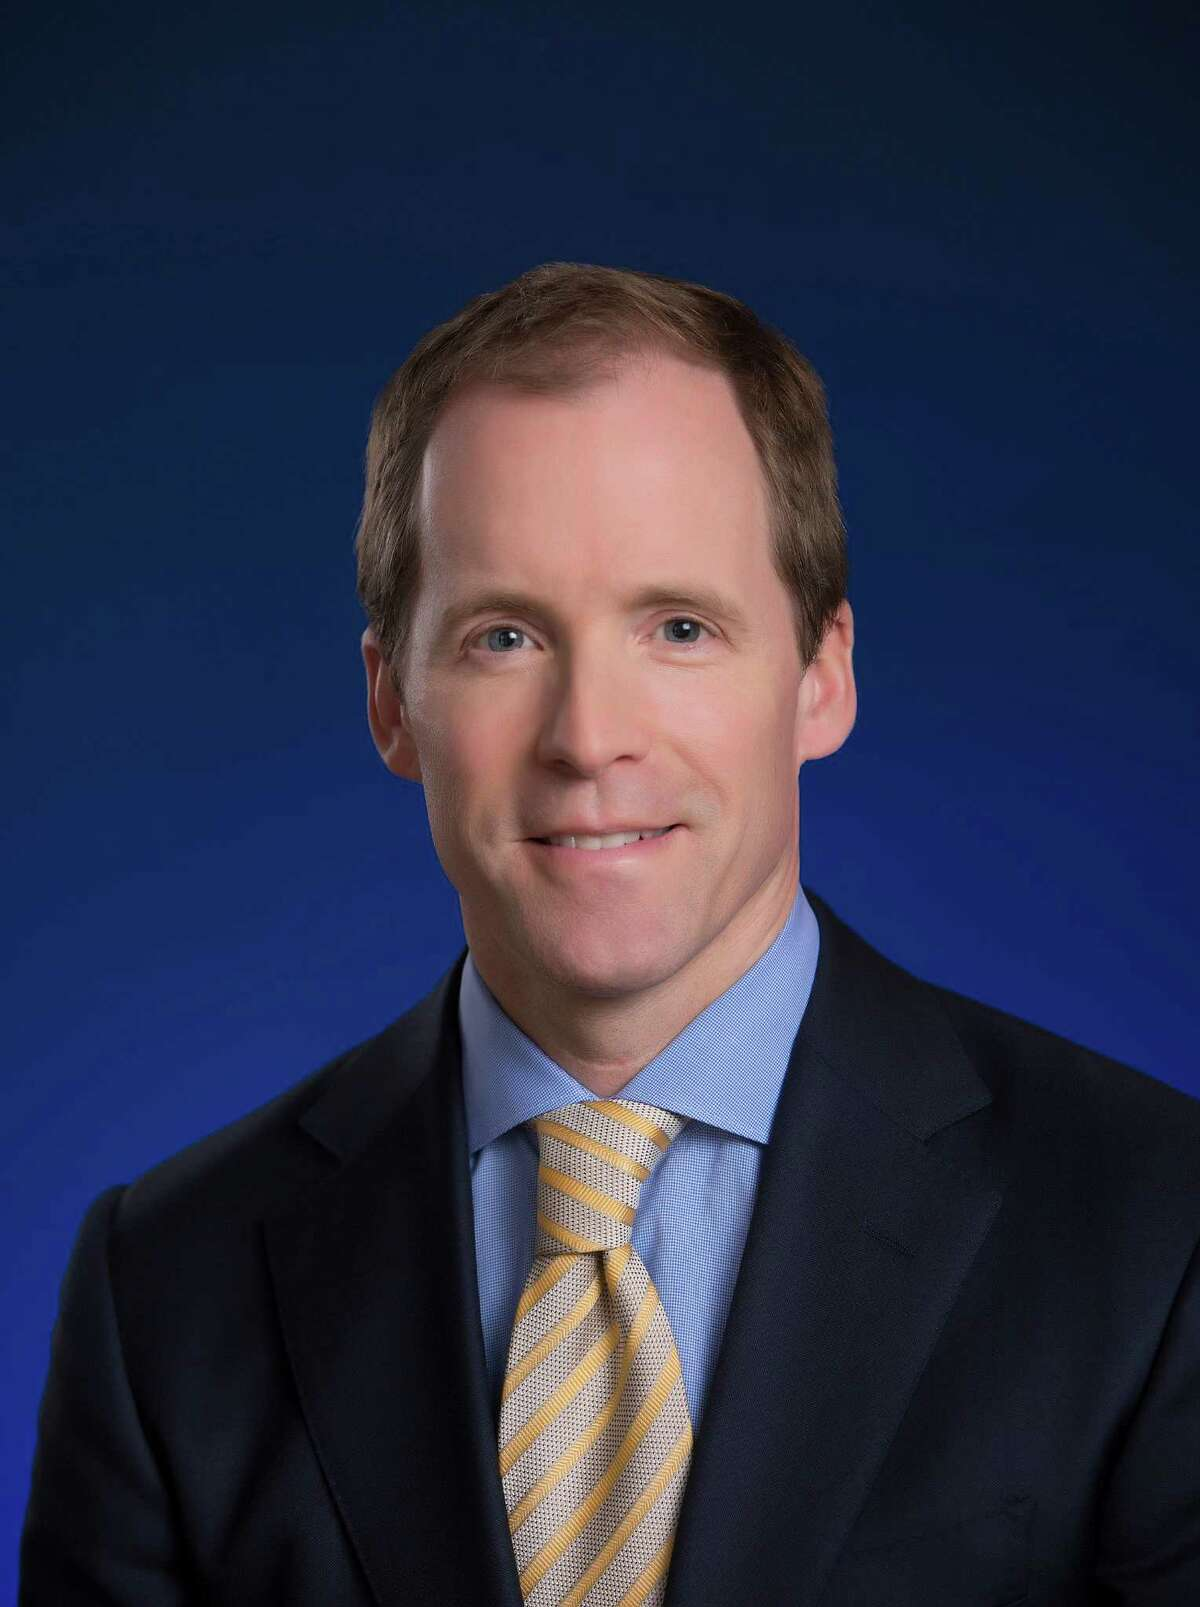 Rowayton resident Mike Towey was recently named a managing director at Point 72 Asset Management in Stamford.